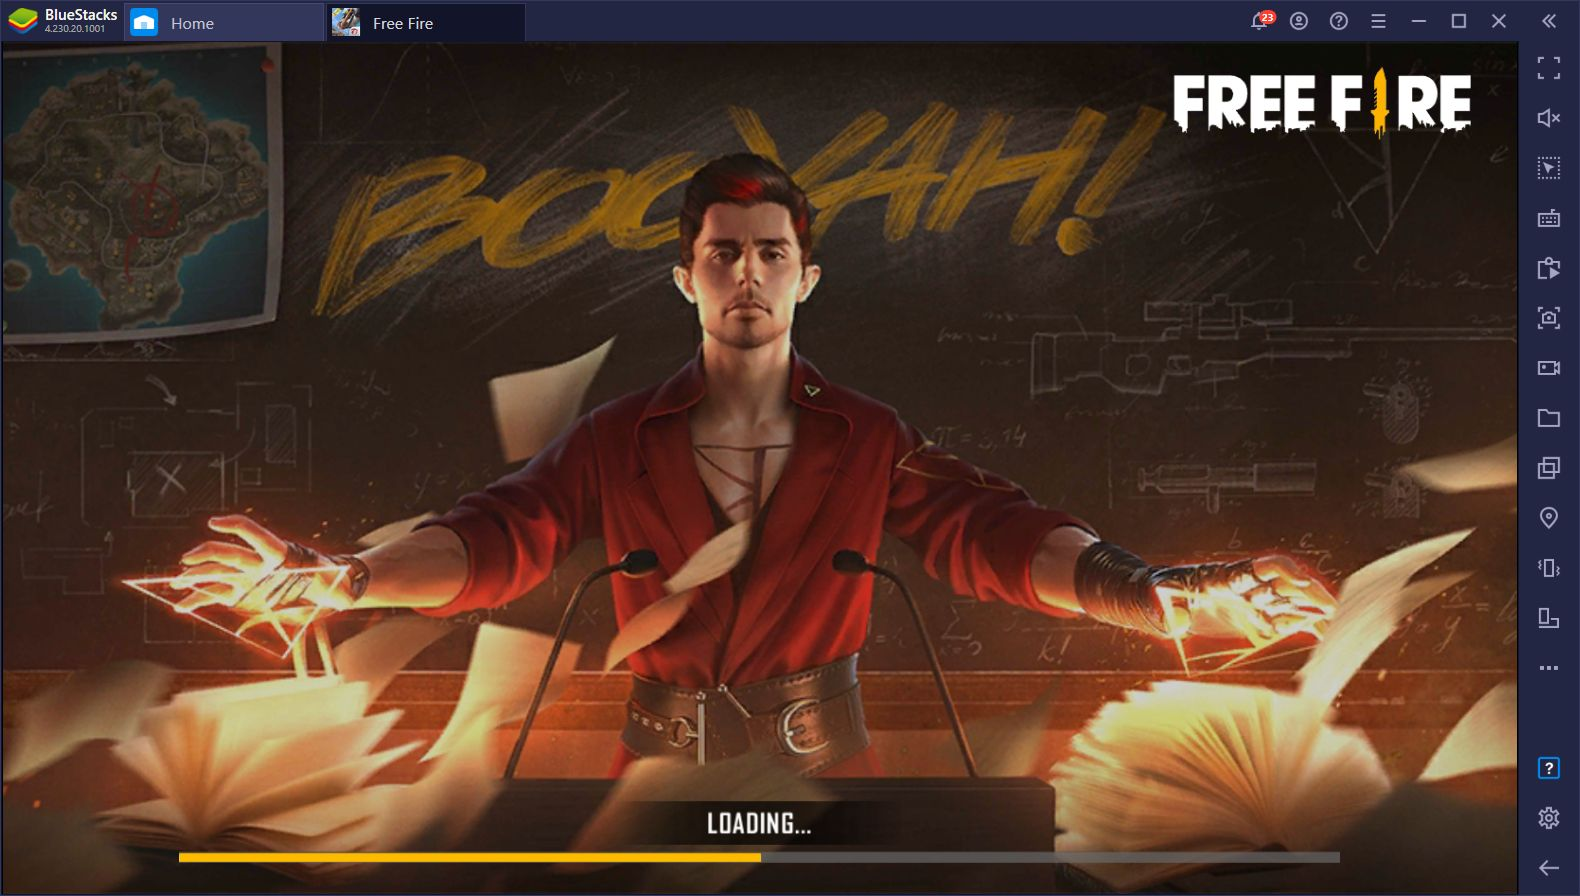 Free Fire X KSHMR – A New Character, Song, and Music Video are Coming to the Popular Mobile BR